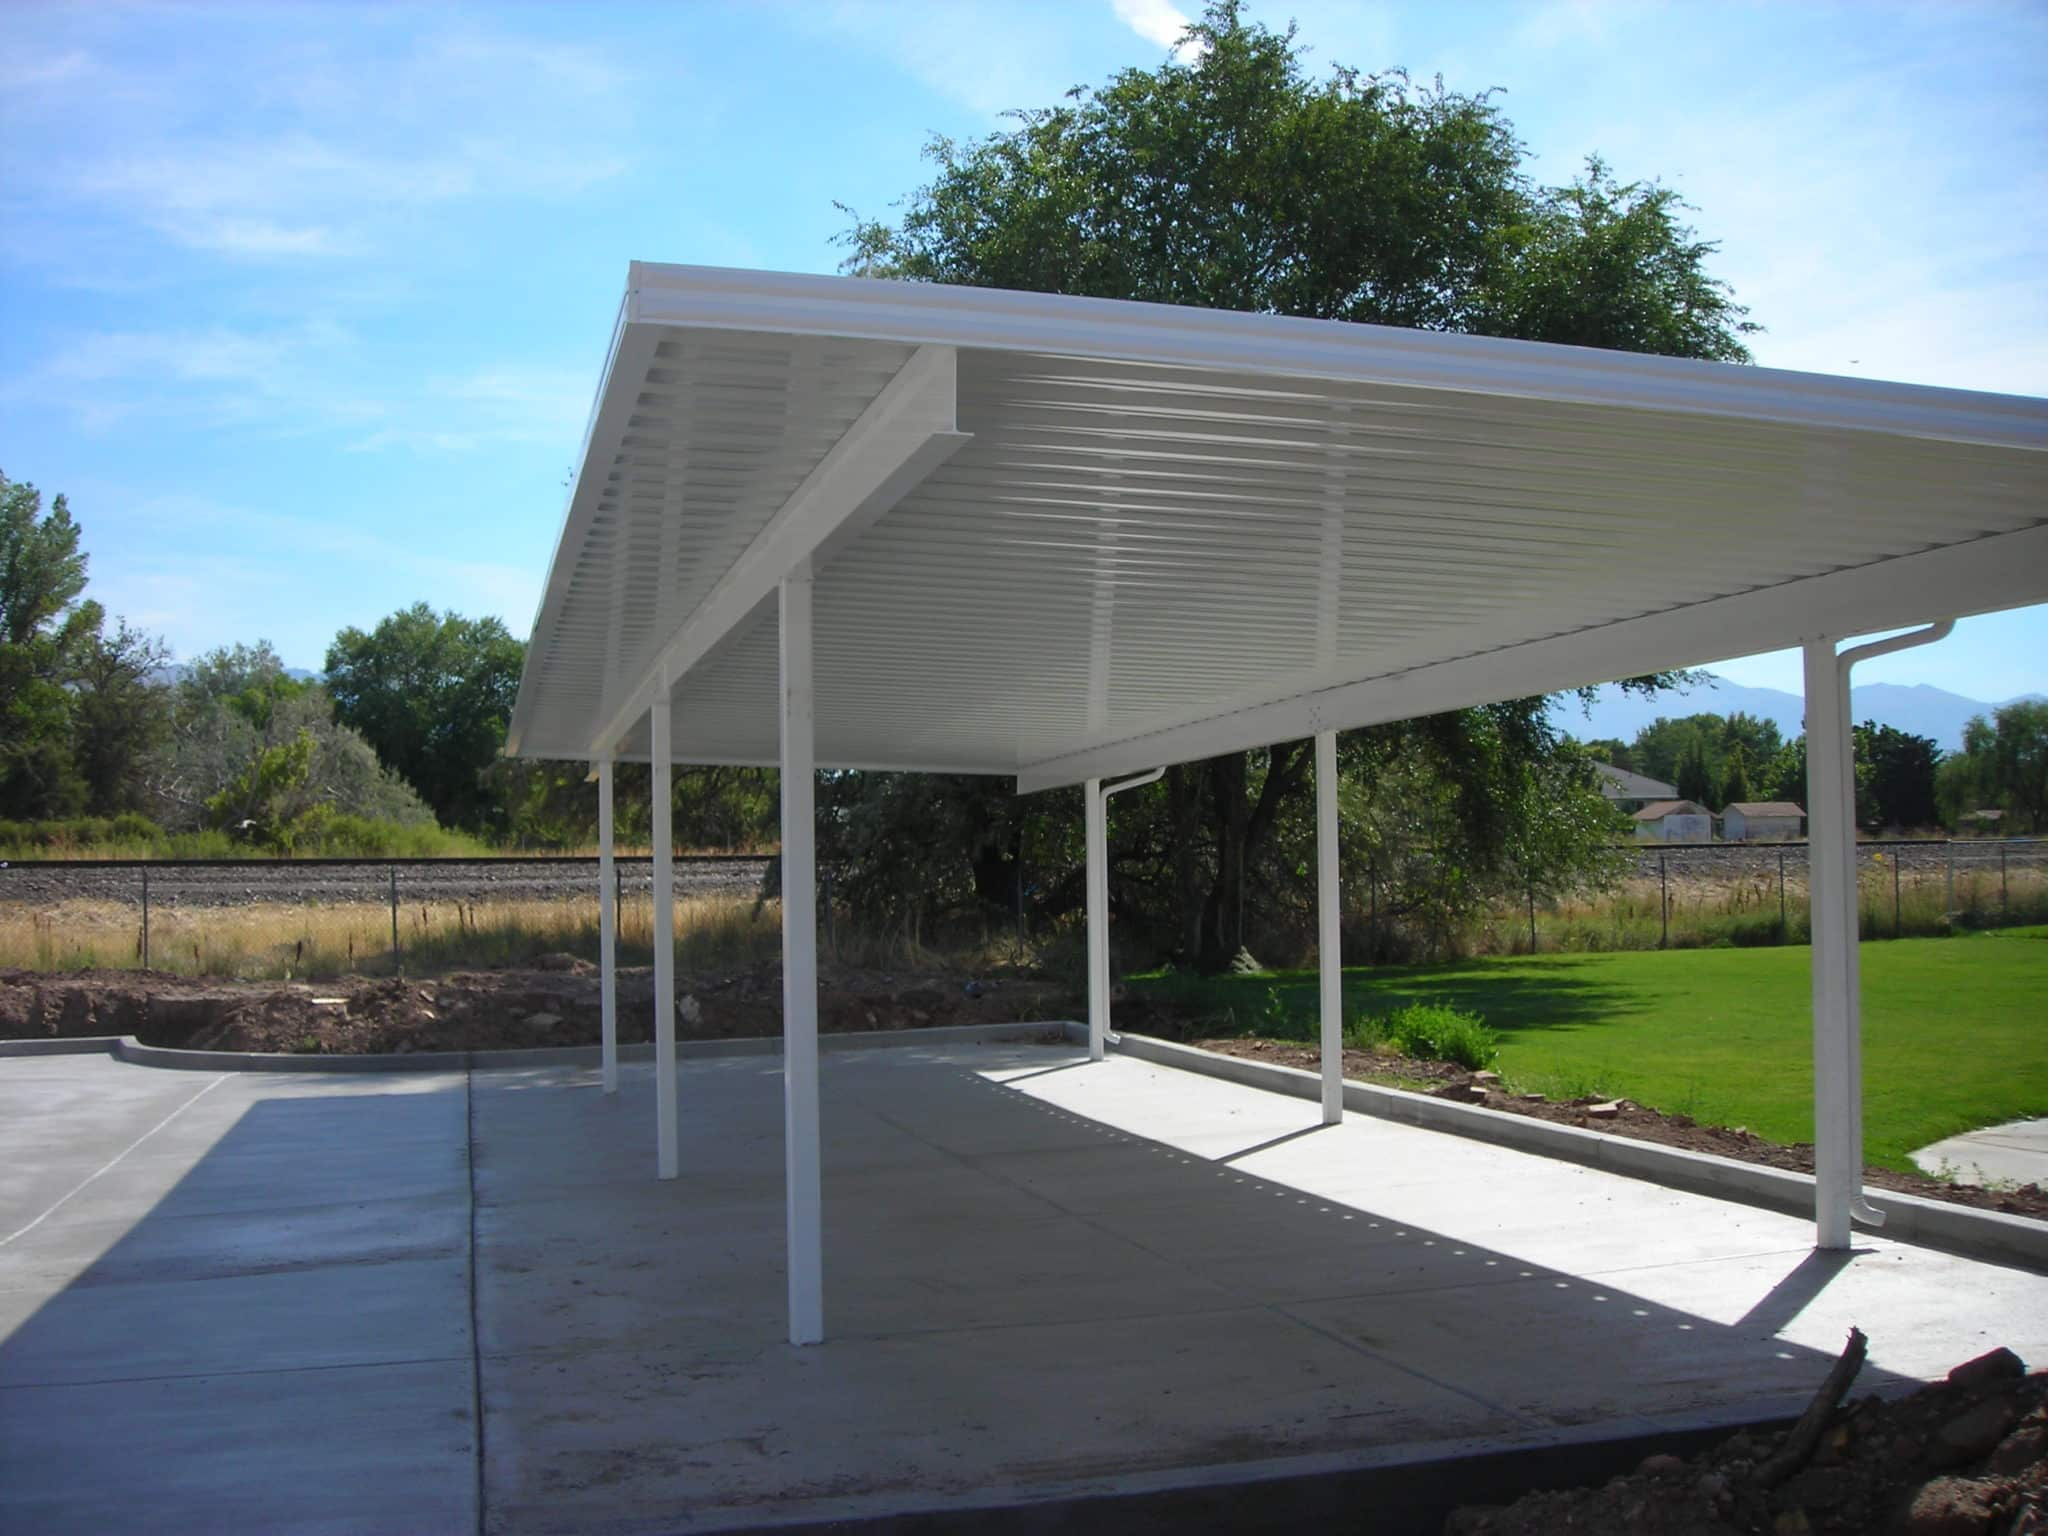 Carport ogden utah kool breeze inc for House plans ogden utah